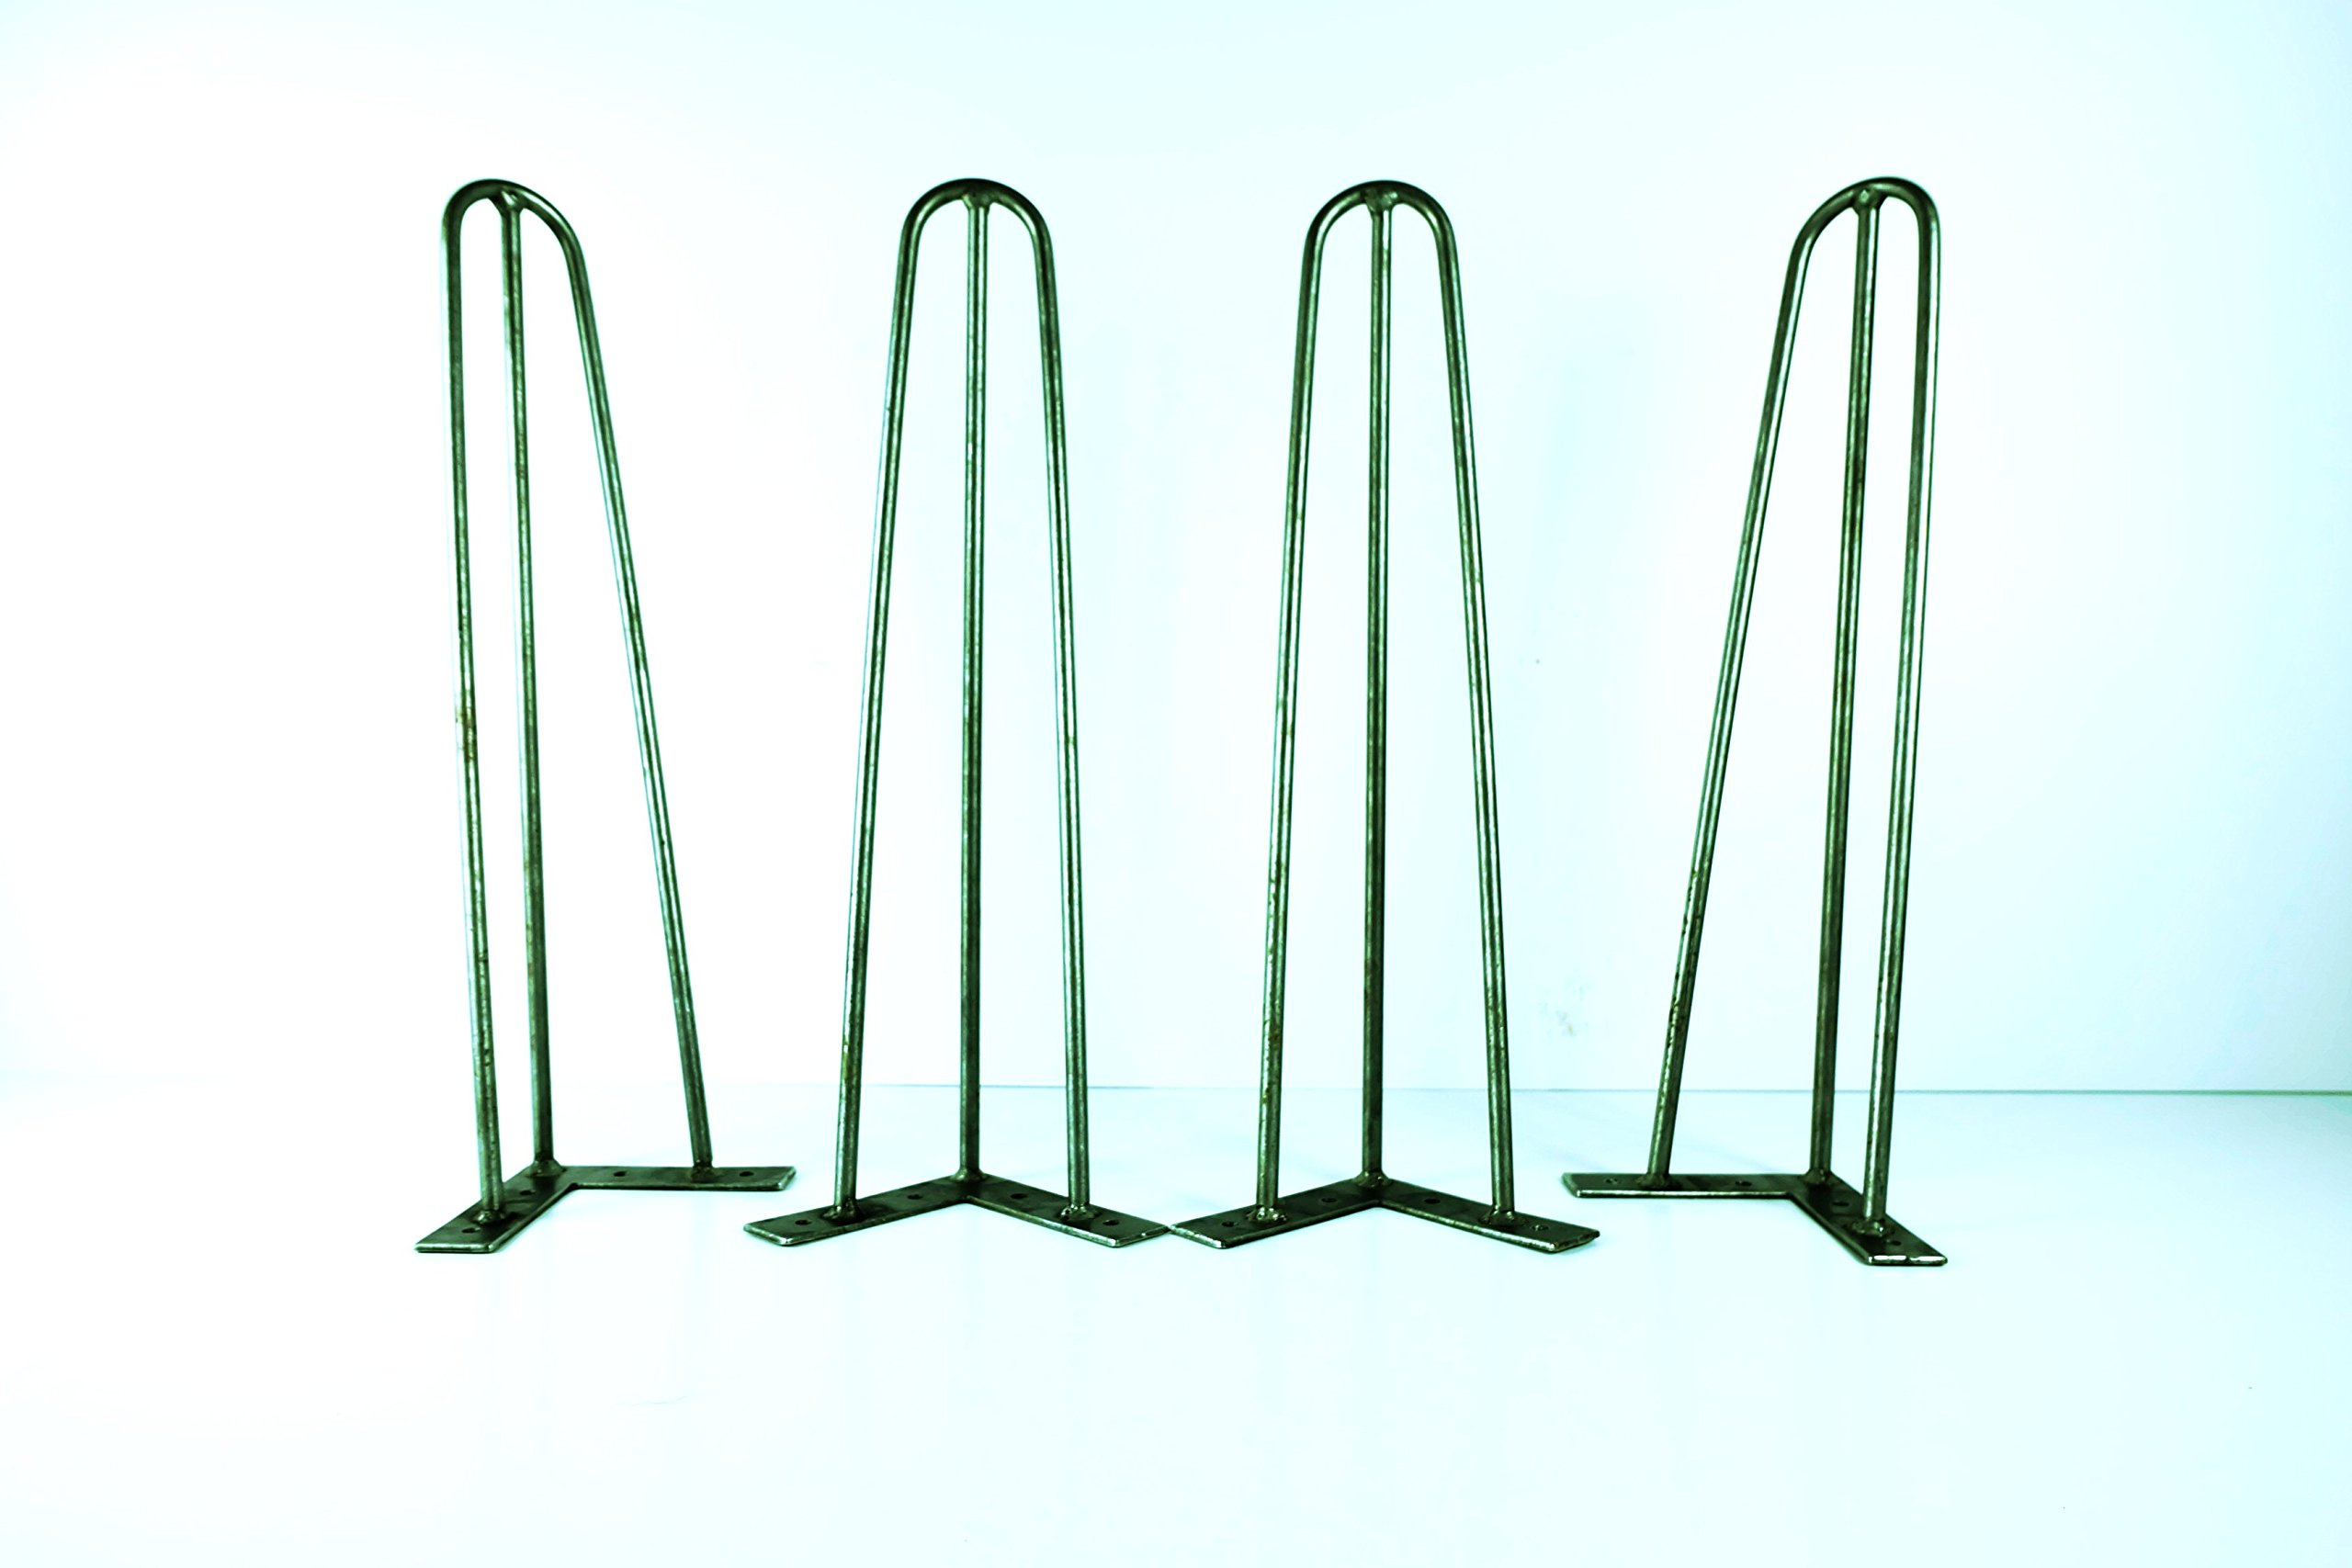 36'' Tall 3 Bar Hairpin Legs, 3/8'' Solid Steel, Powder Coated Satin Black, Set of 4